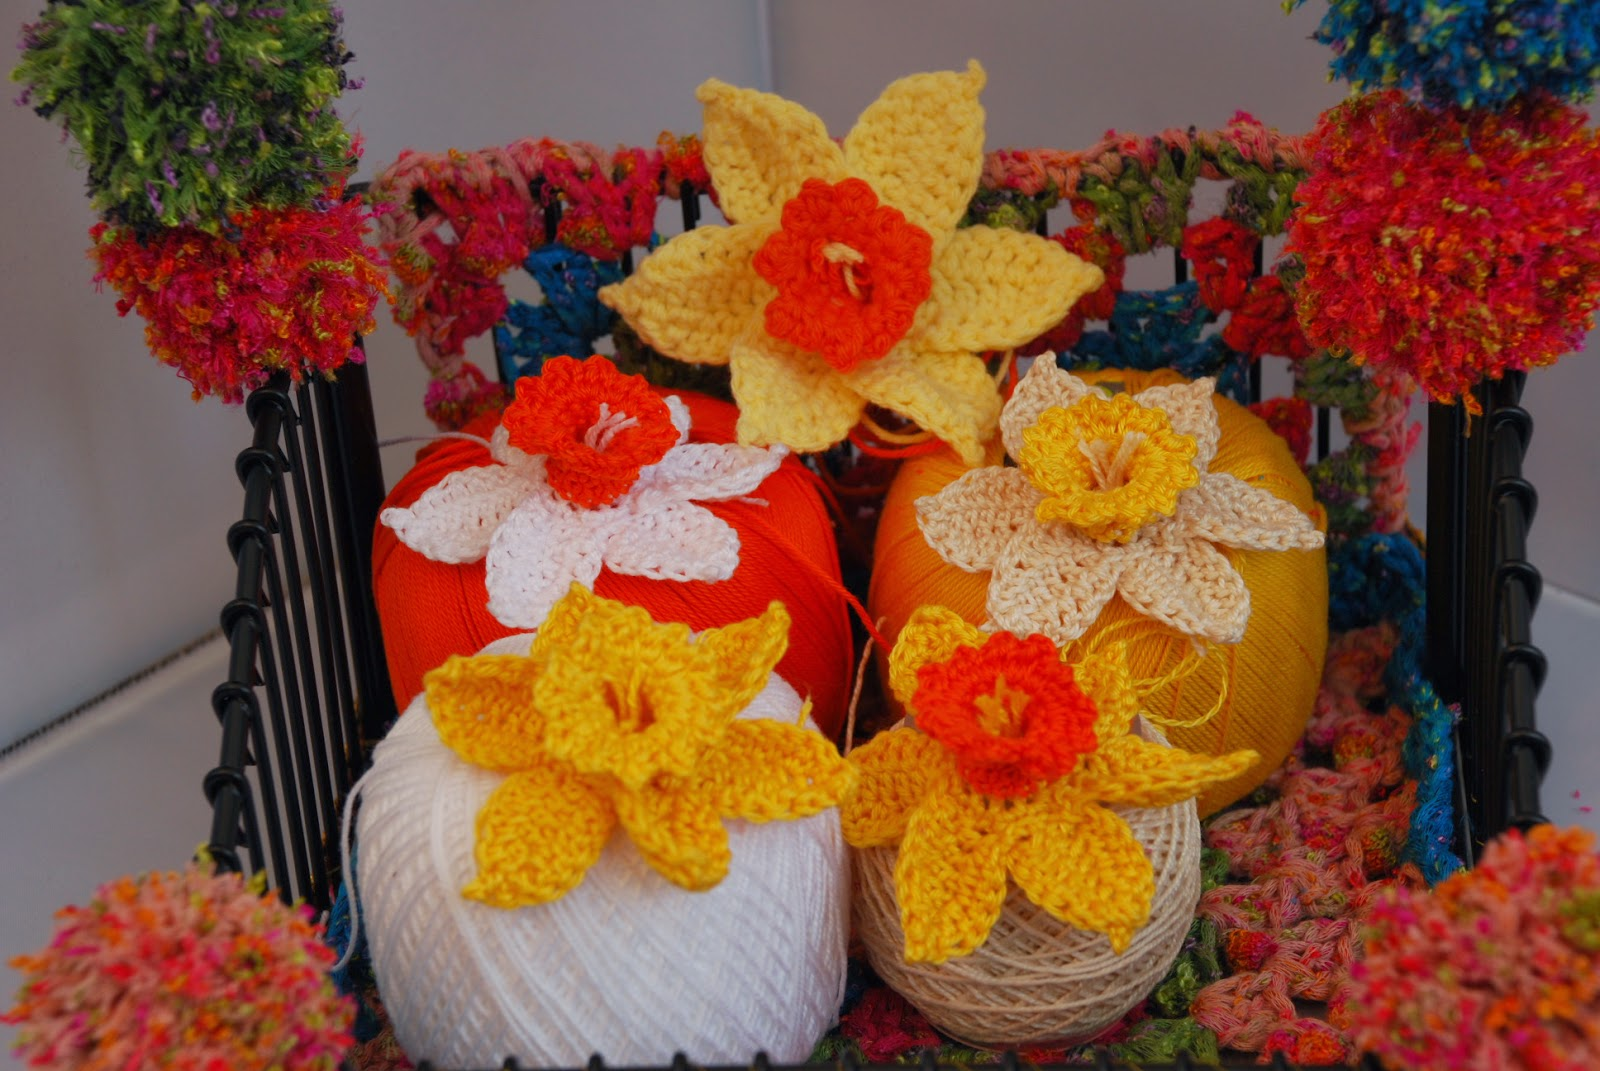 Crochet Daffodil pattern and tutorial: image of Amjaylou's crochet daffodils